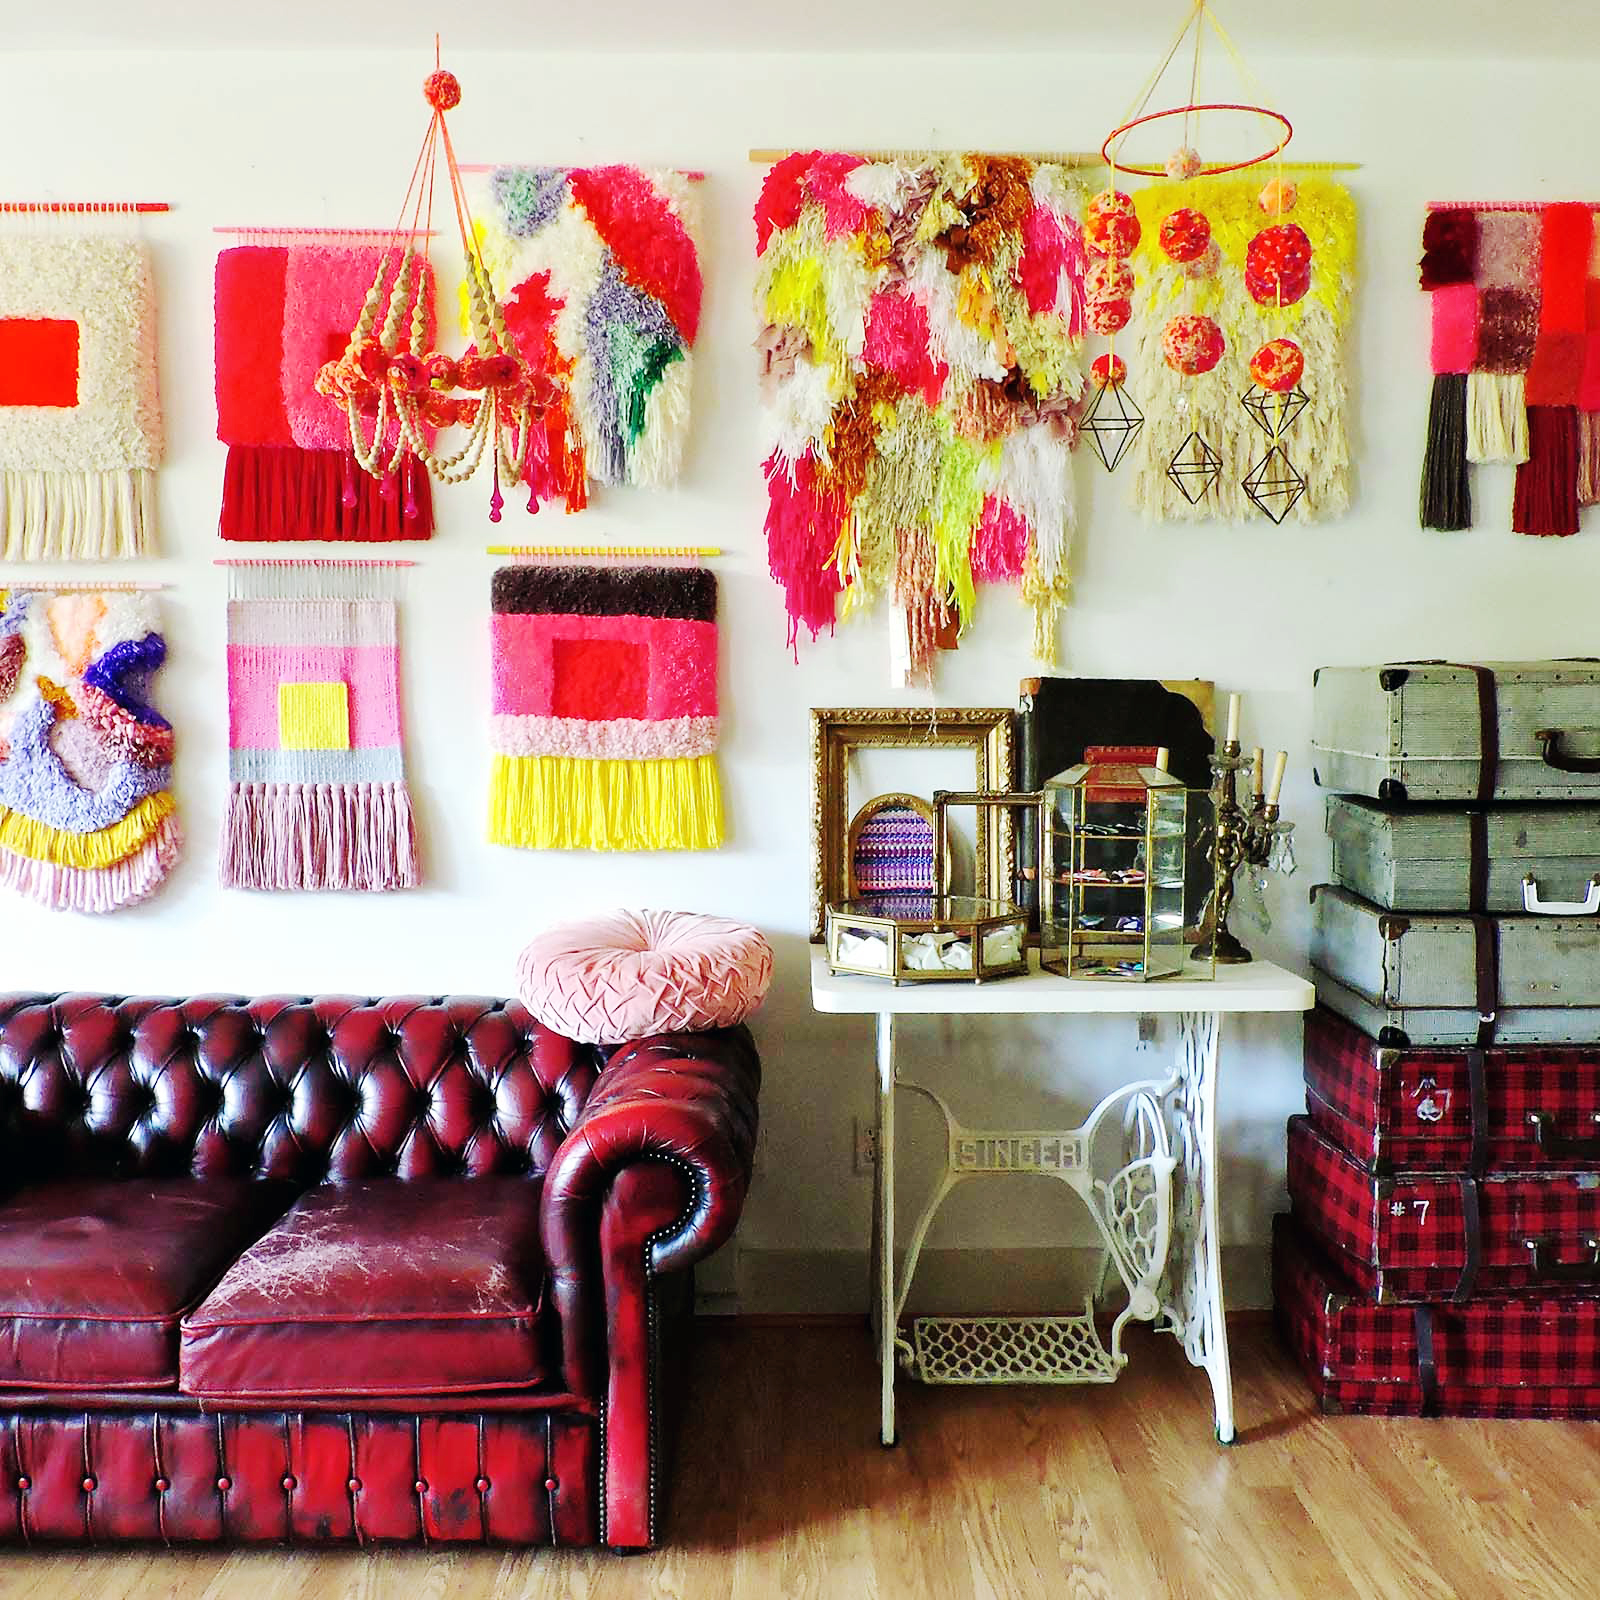 Studio Tour: Judit Just, on Design*Sponge